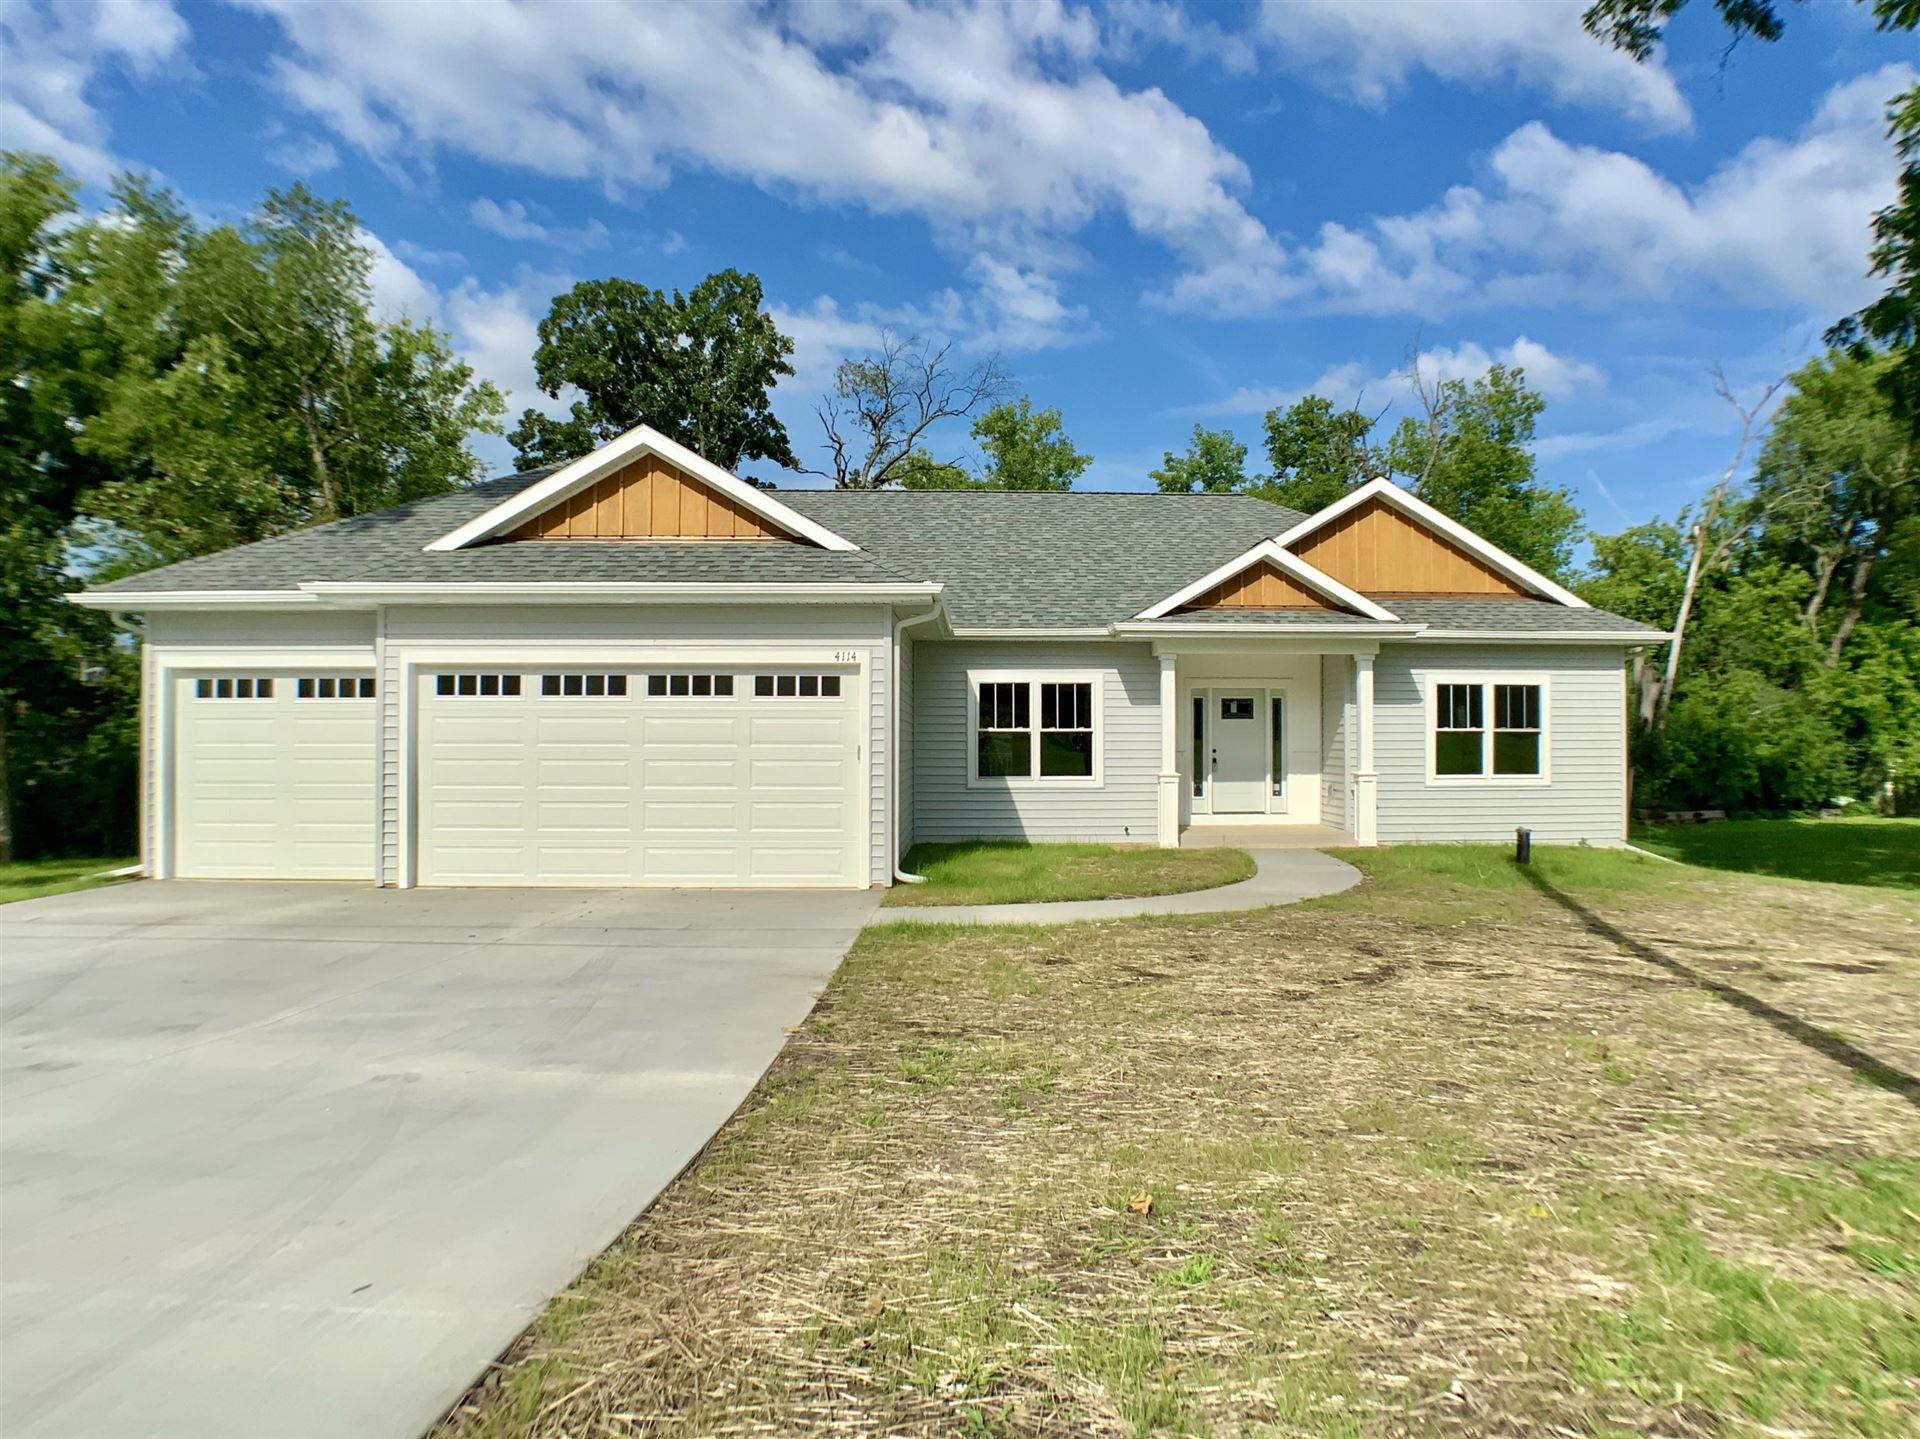 4114 Sunset Rd, Waterford, WI 53185 - #: 1703042